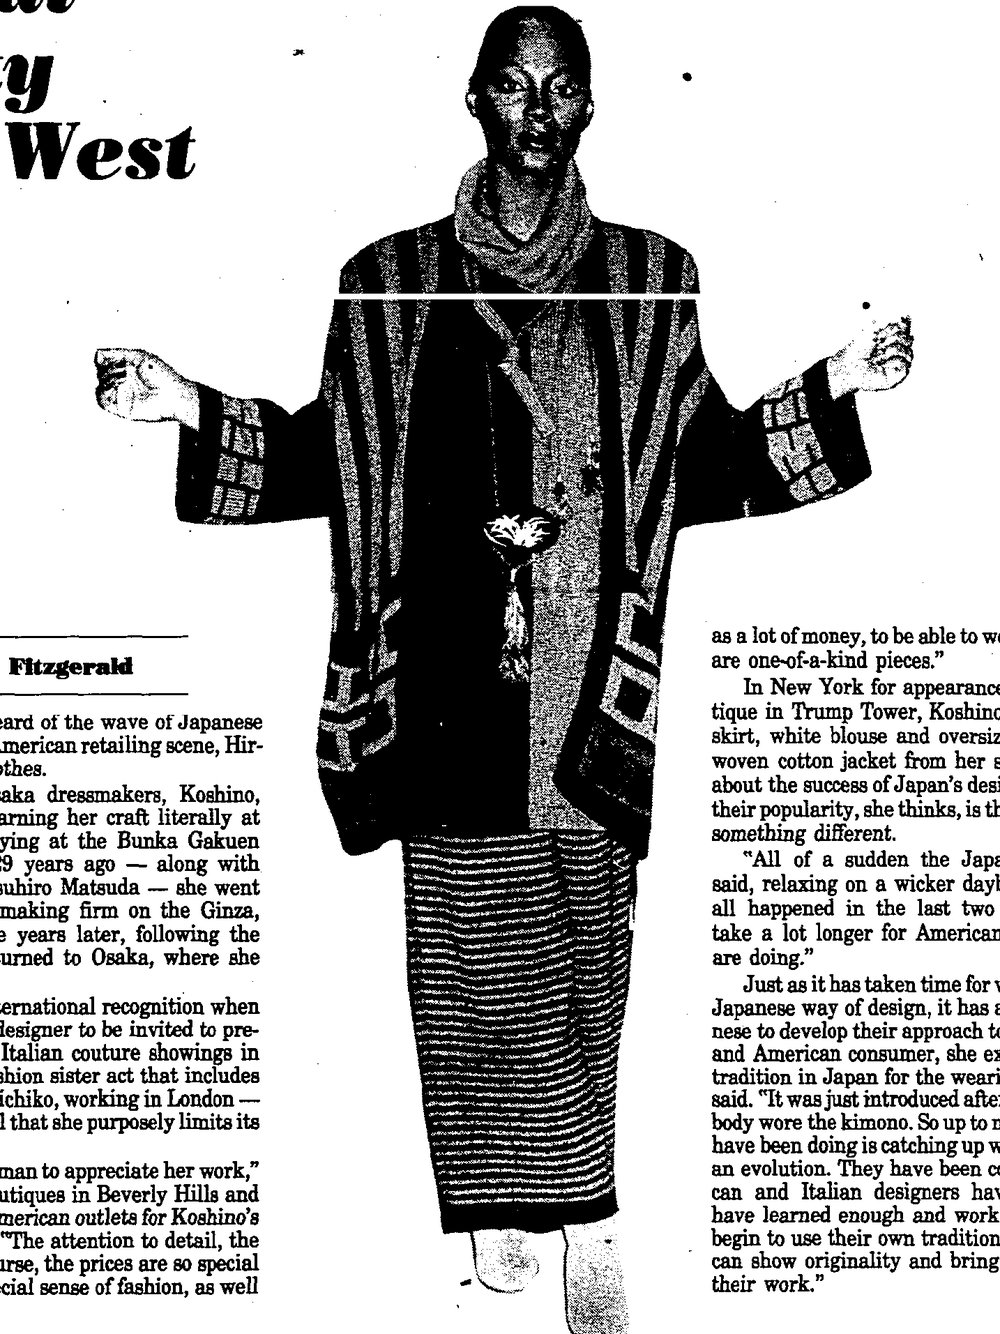 An ensemble by Koshino. Newsday, October 13, 1983.